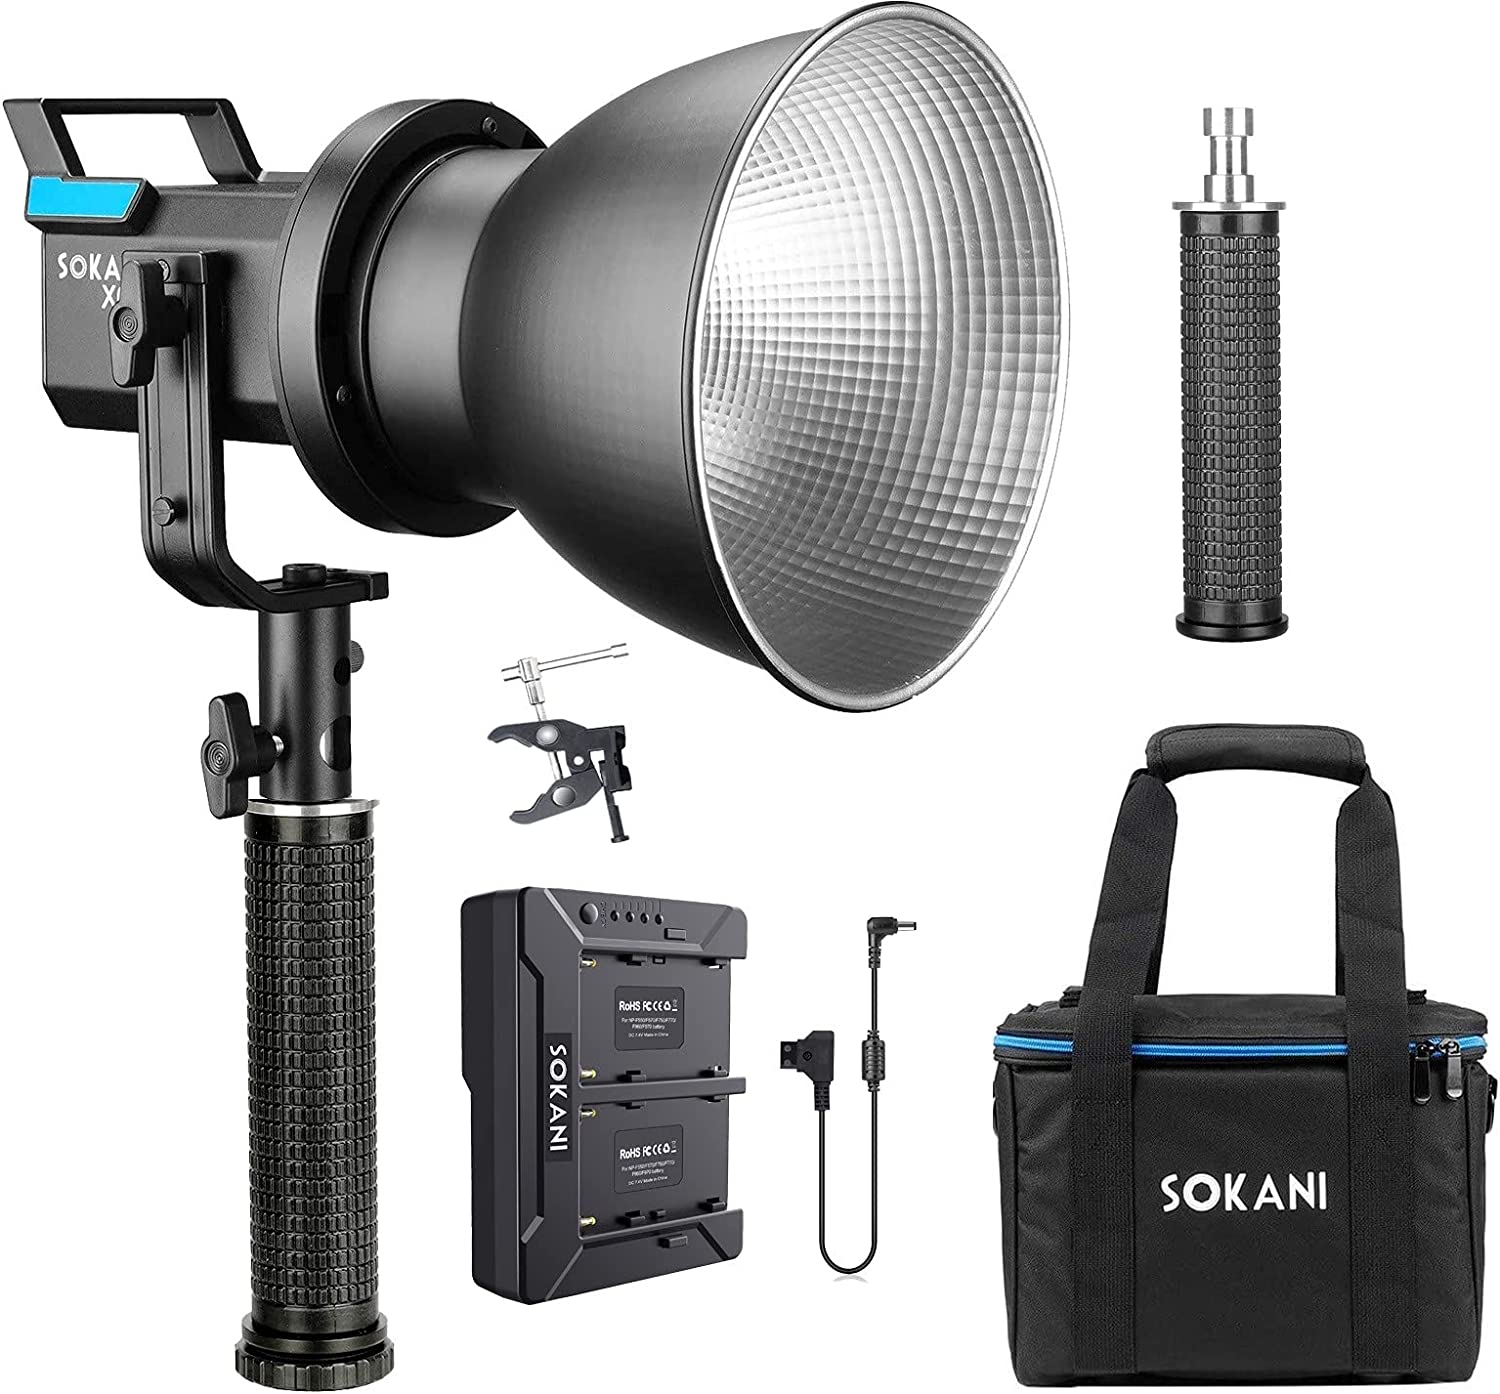 Sokani X60 V2 Minneapolis Mall with Battery Charger Handle COB LED Kit Video At the price and